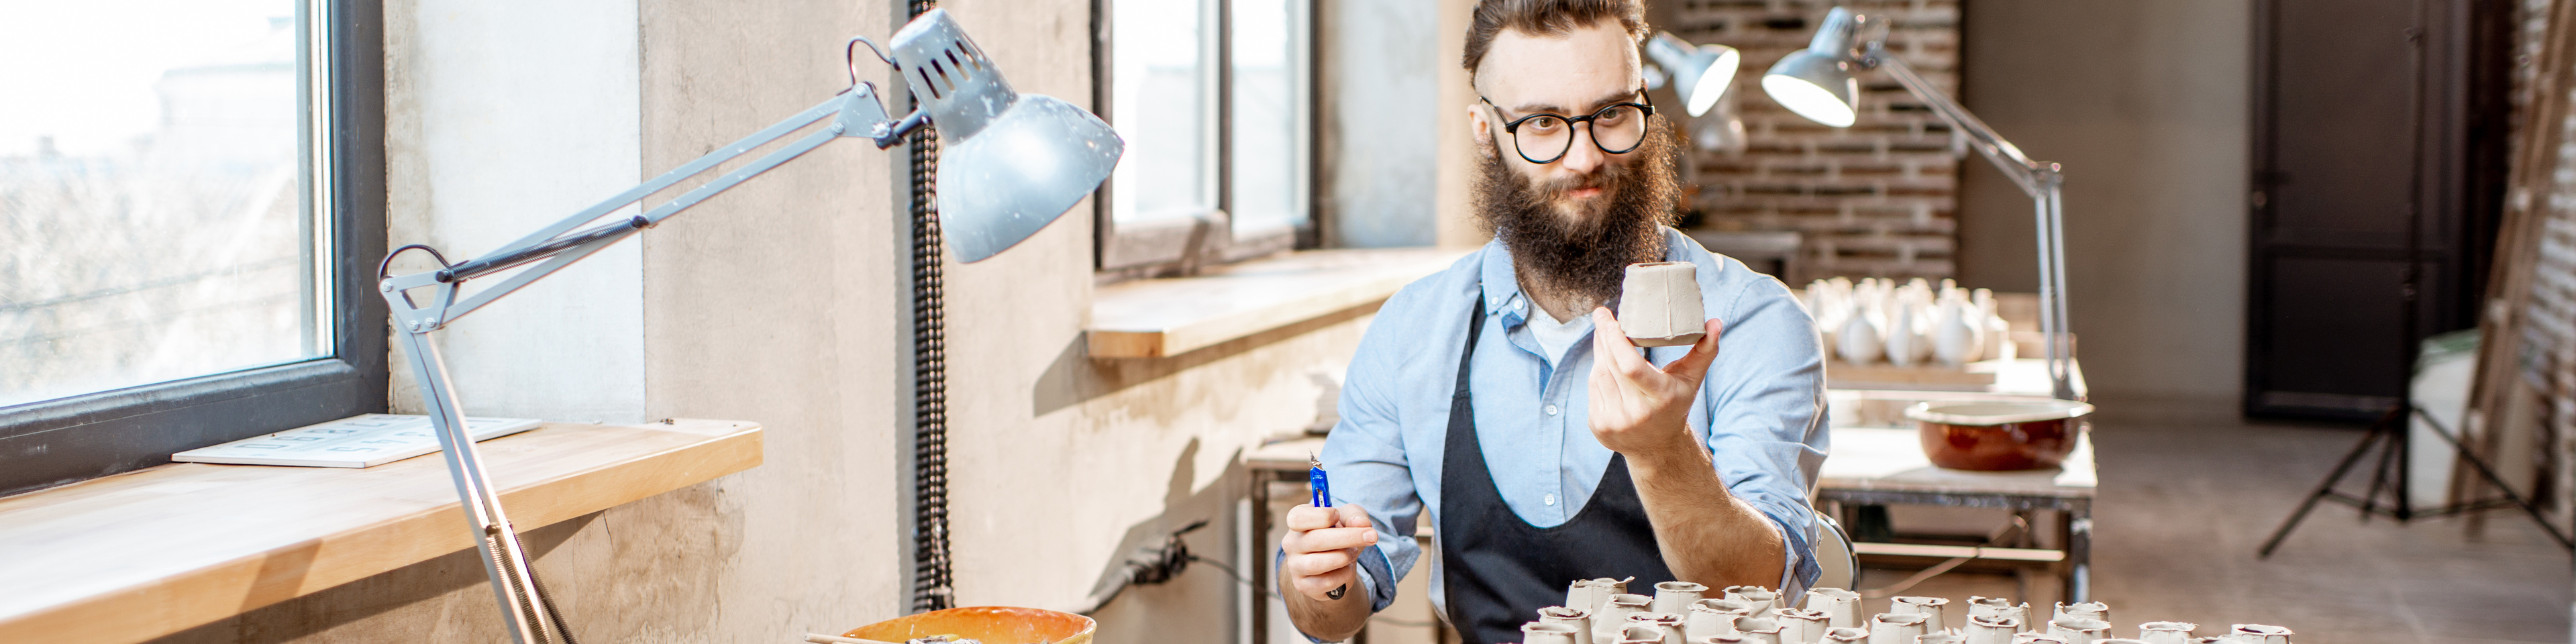 Why You Need A Business License For Your Etsy Store